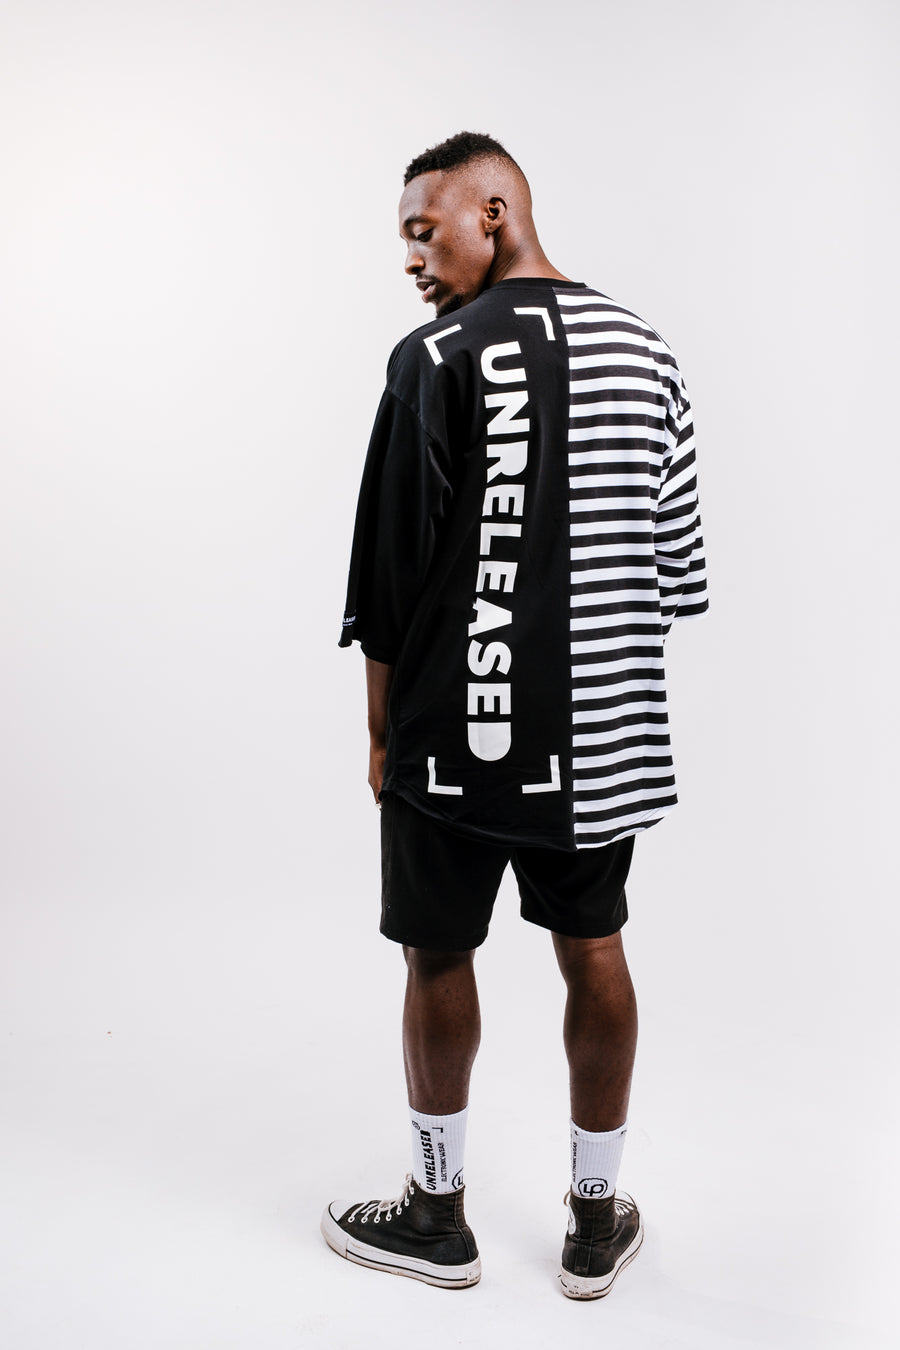 MEN'S OVERSIZE T-SHIRT COMBINED WITH STRIPES WITH PLAIN